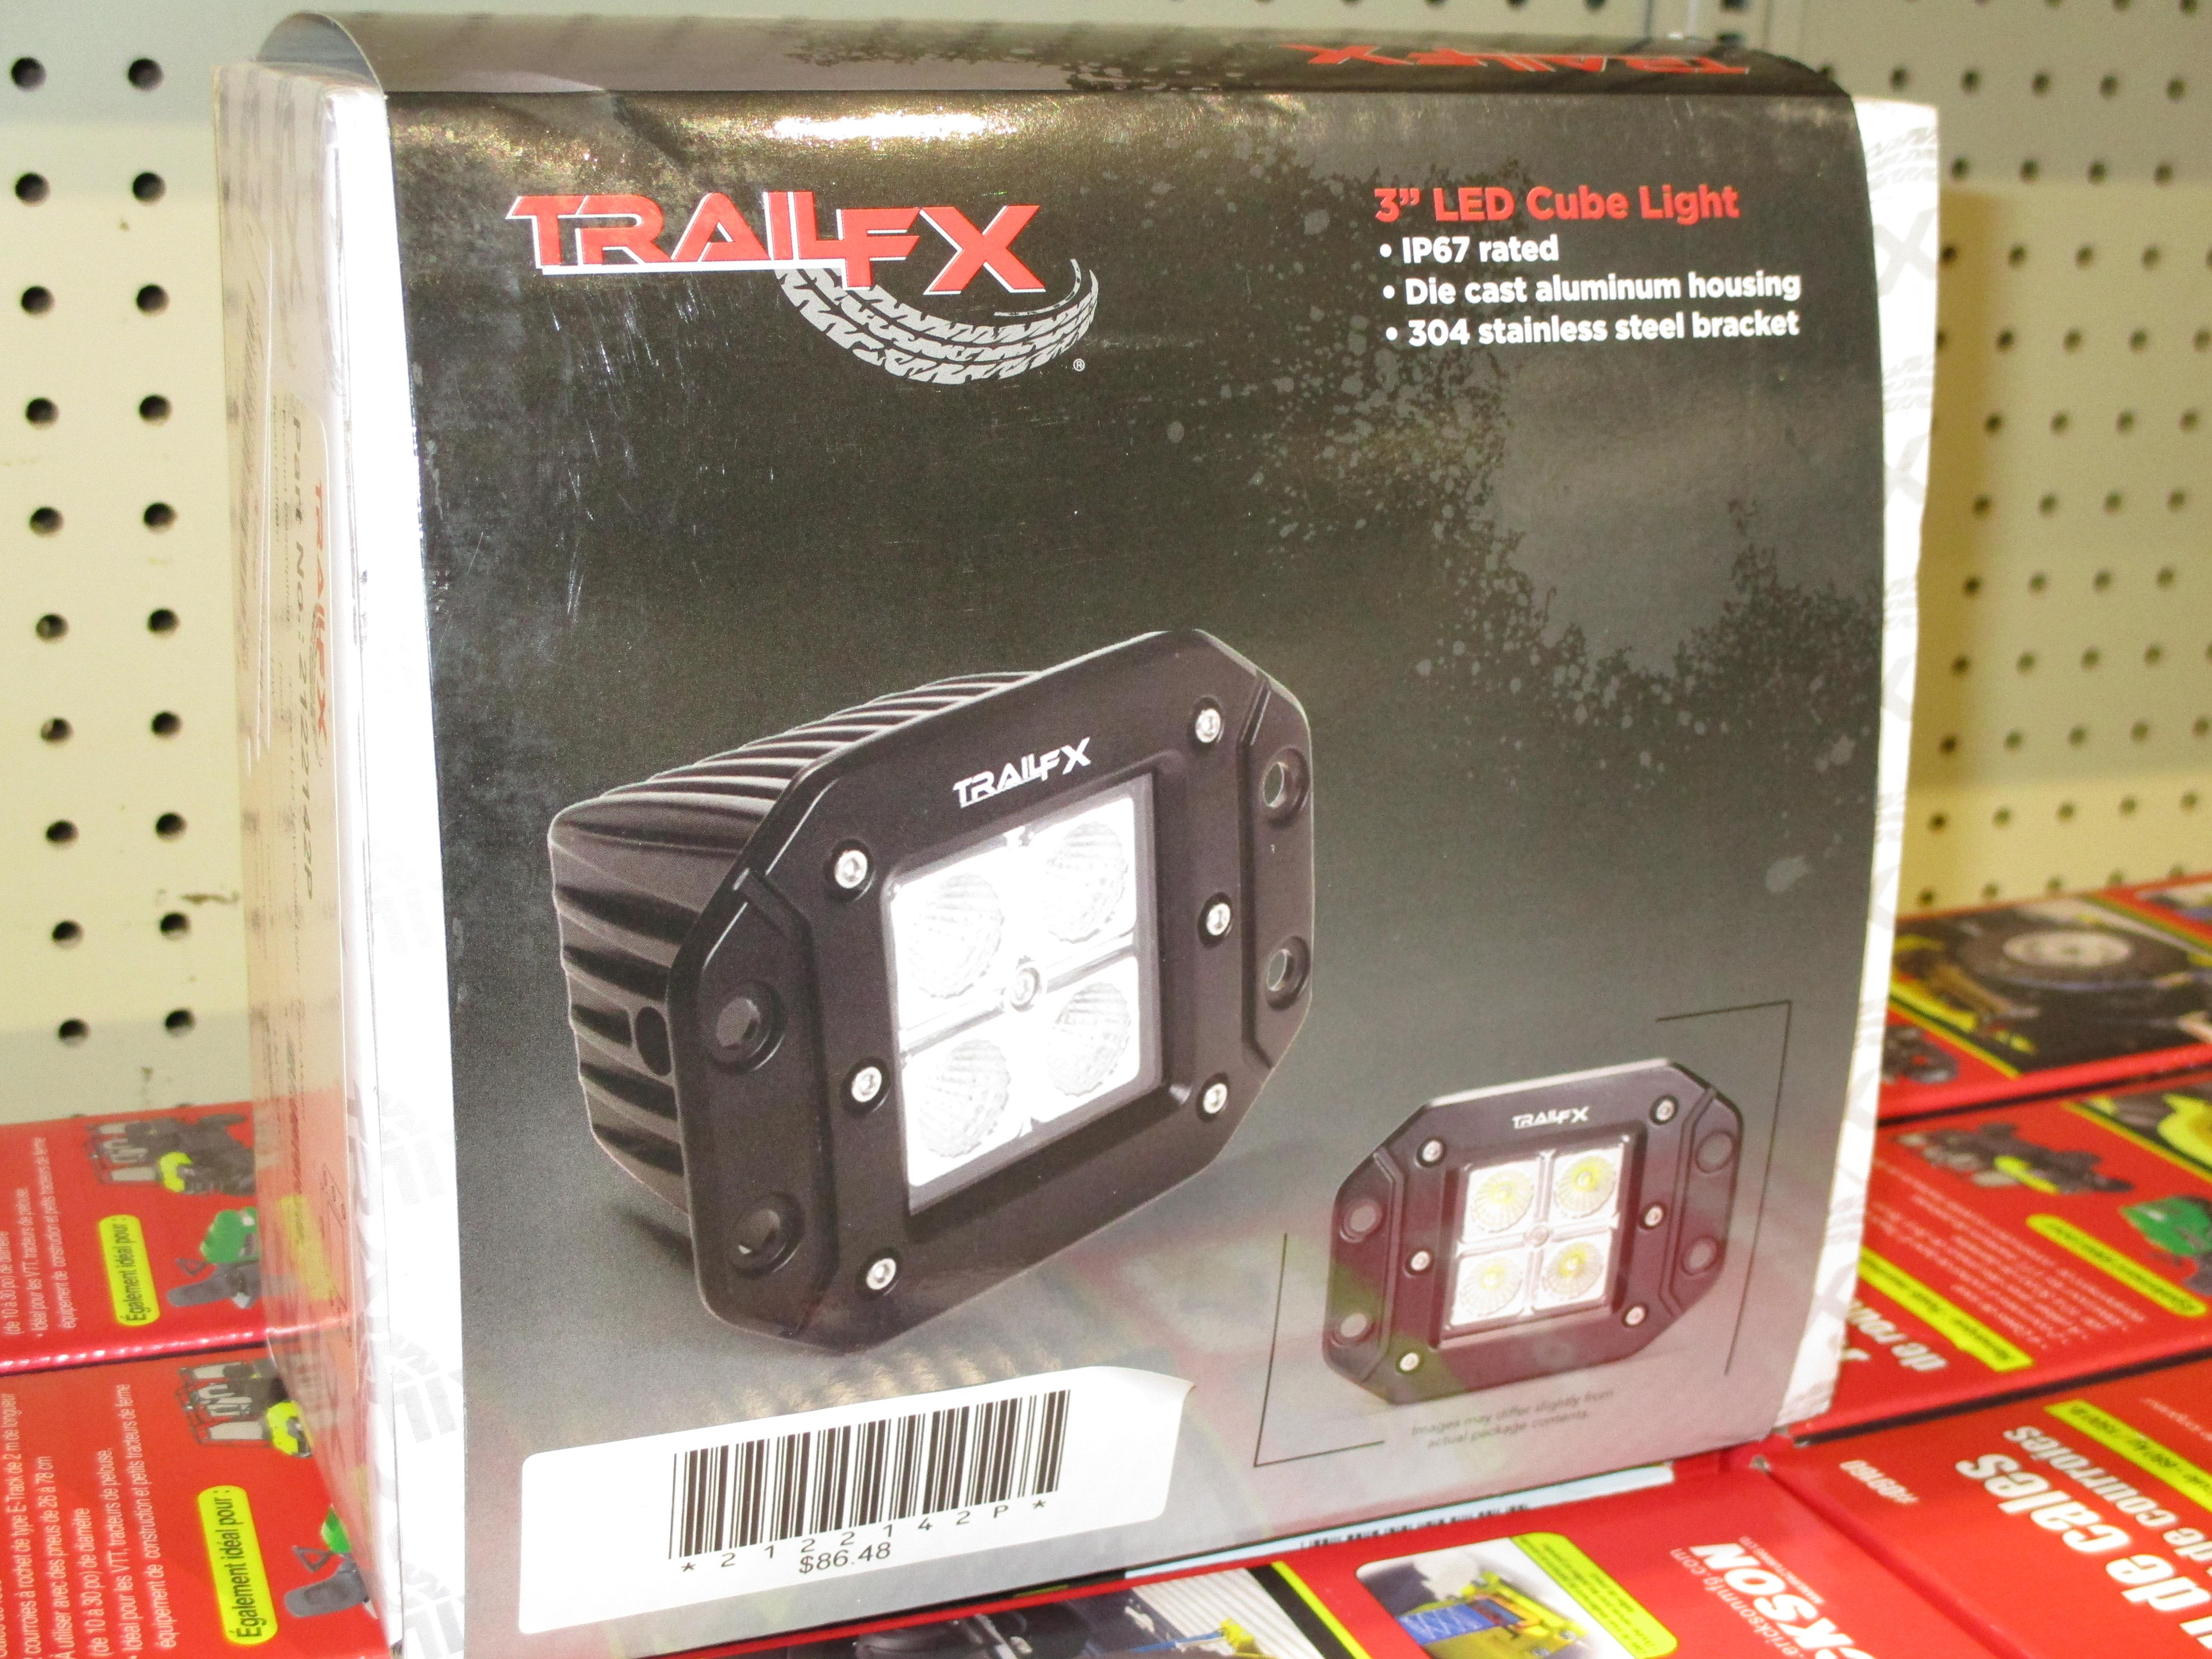 TrailFX 3'' LED Cube Light